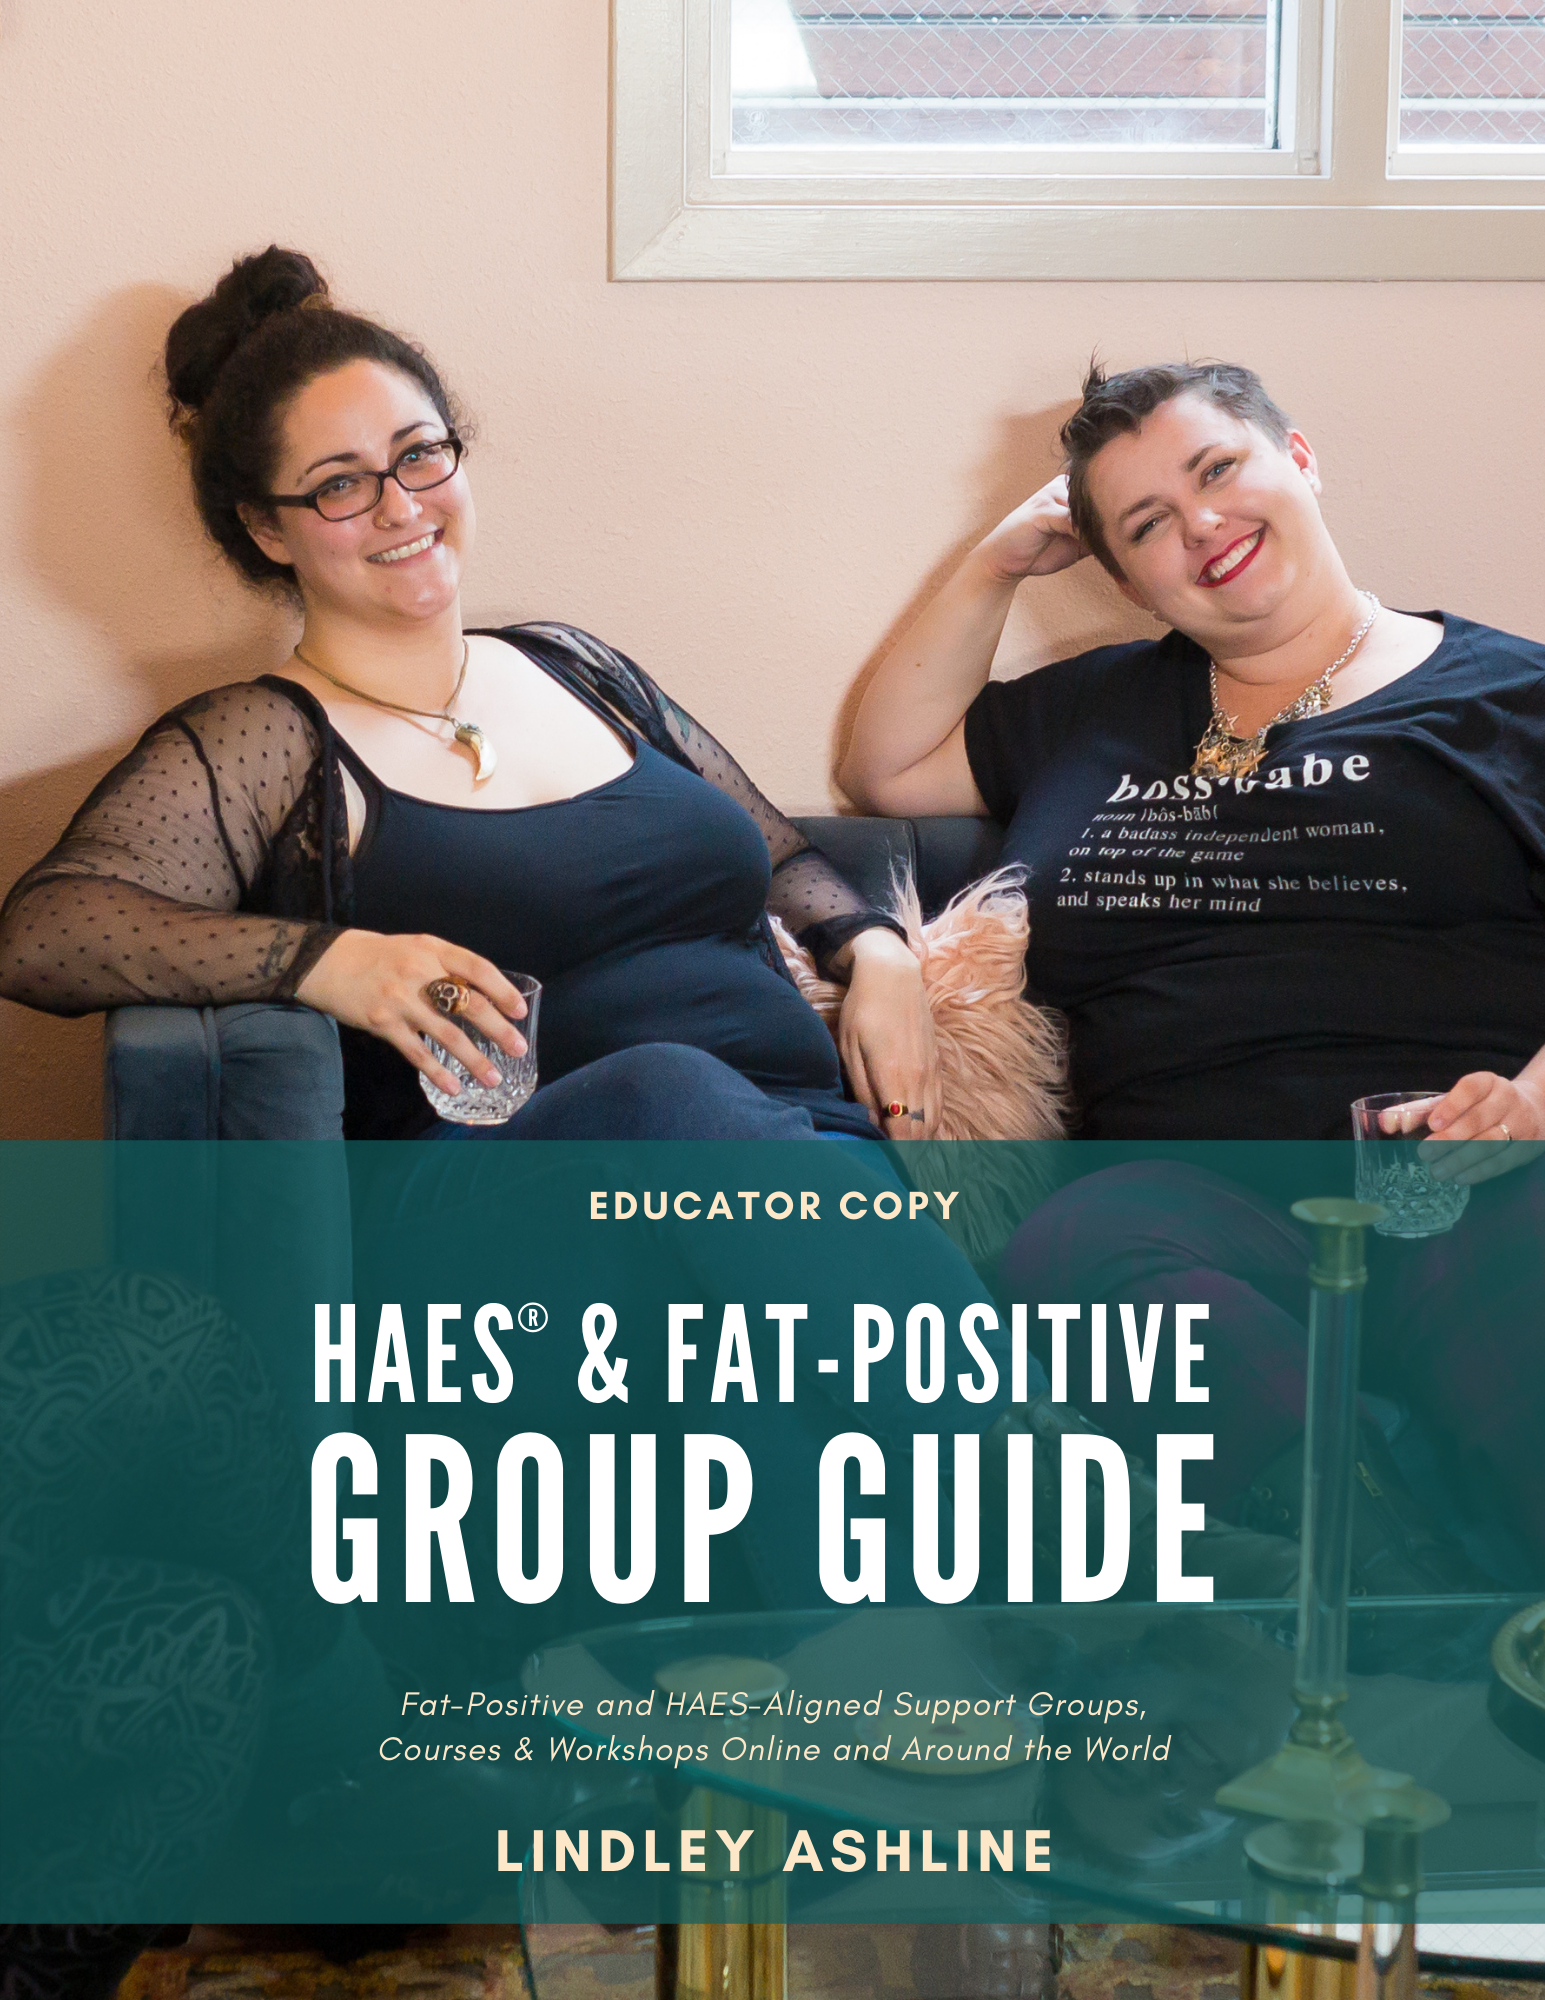 Book cover with two plus-size women relaxing on a couch and the book title.